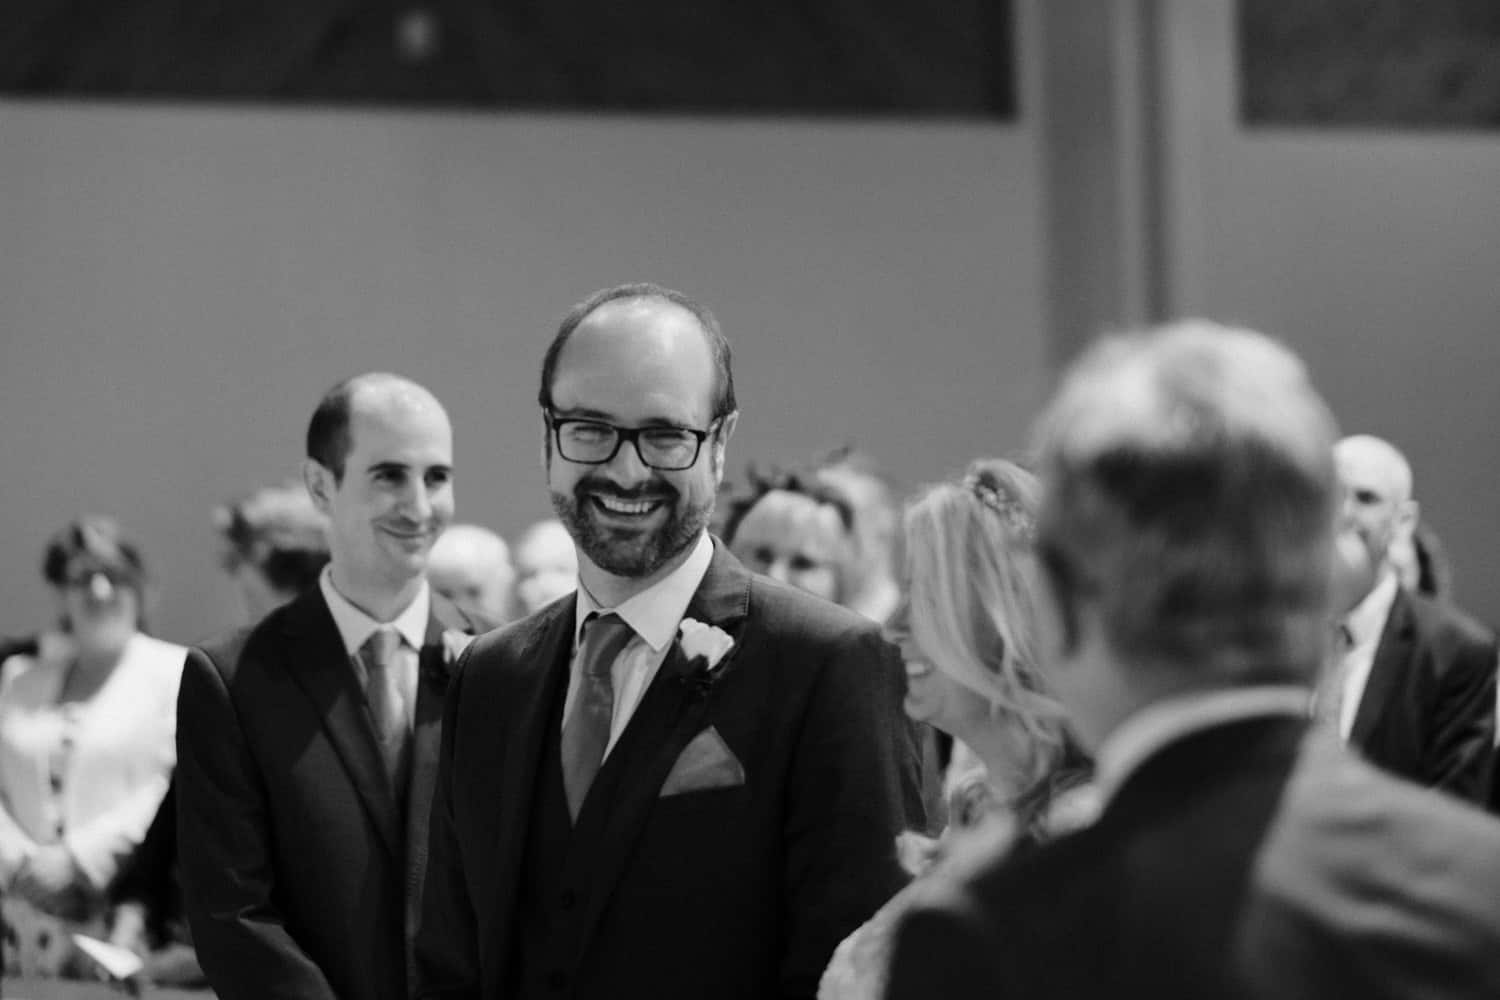 a big smile from the groom